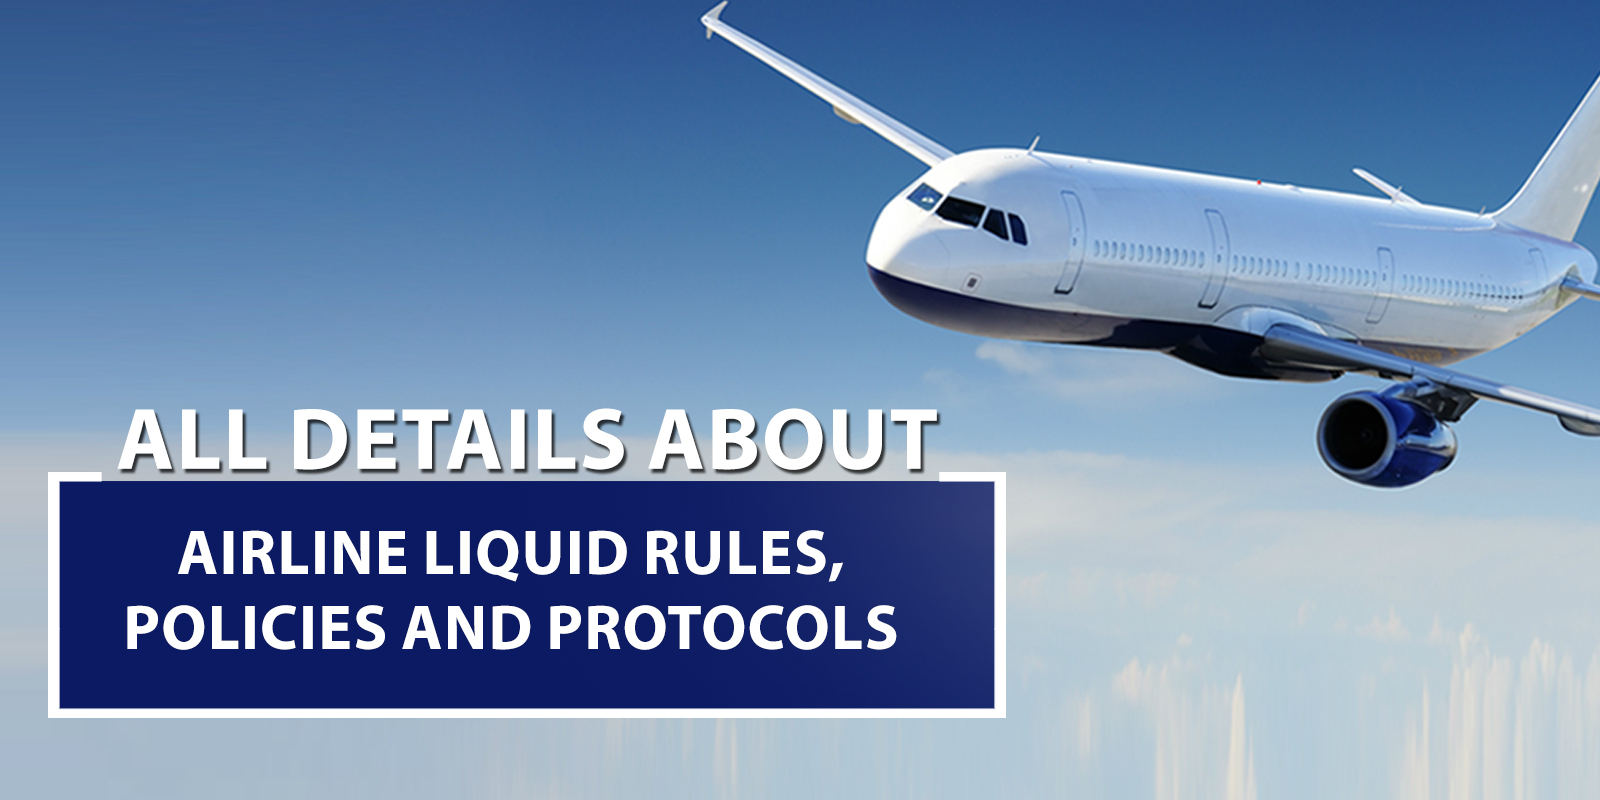 All Details About Airline Liquid Rules, Policies and Protocols